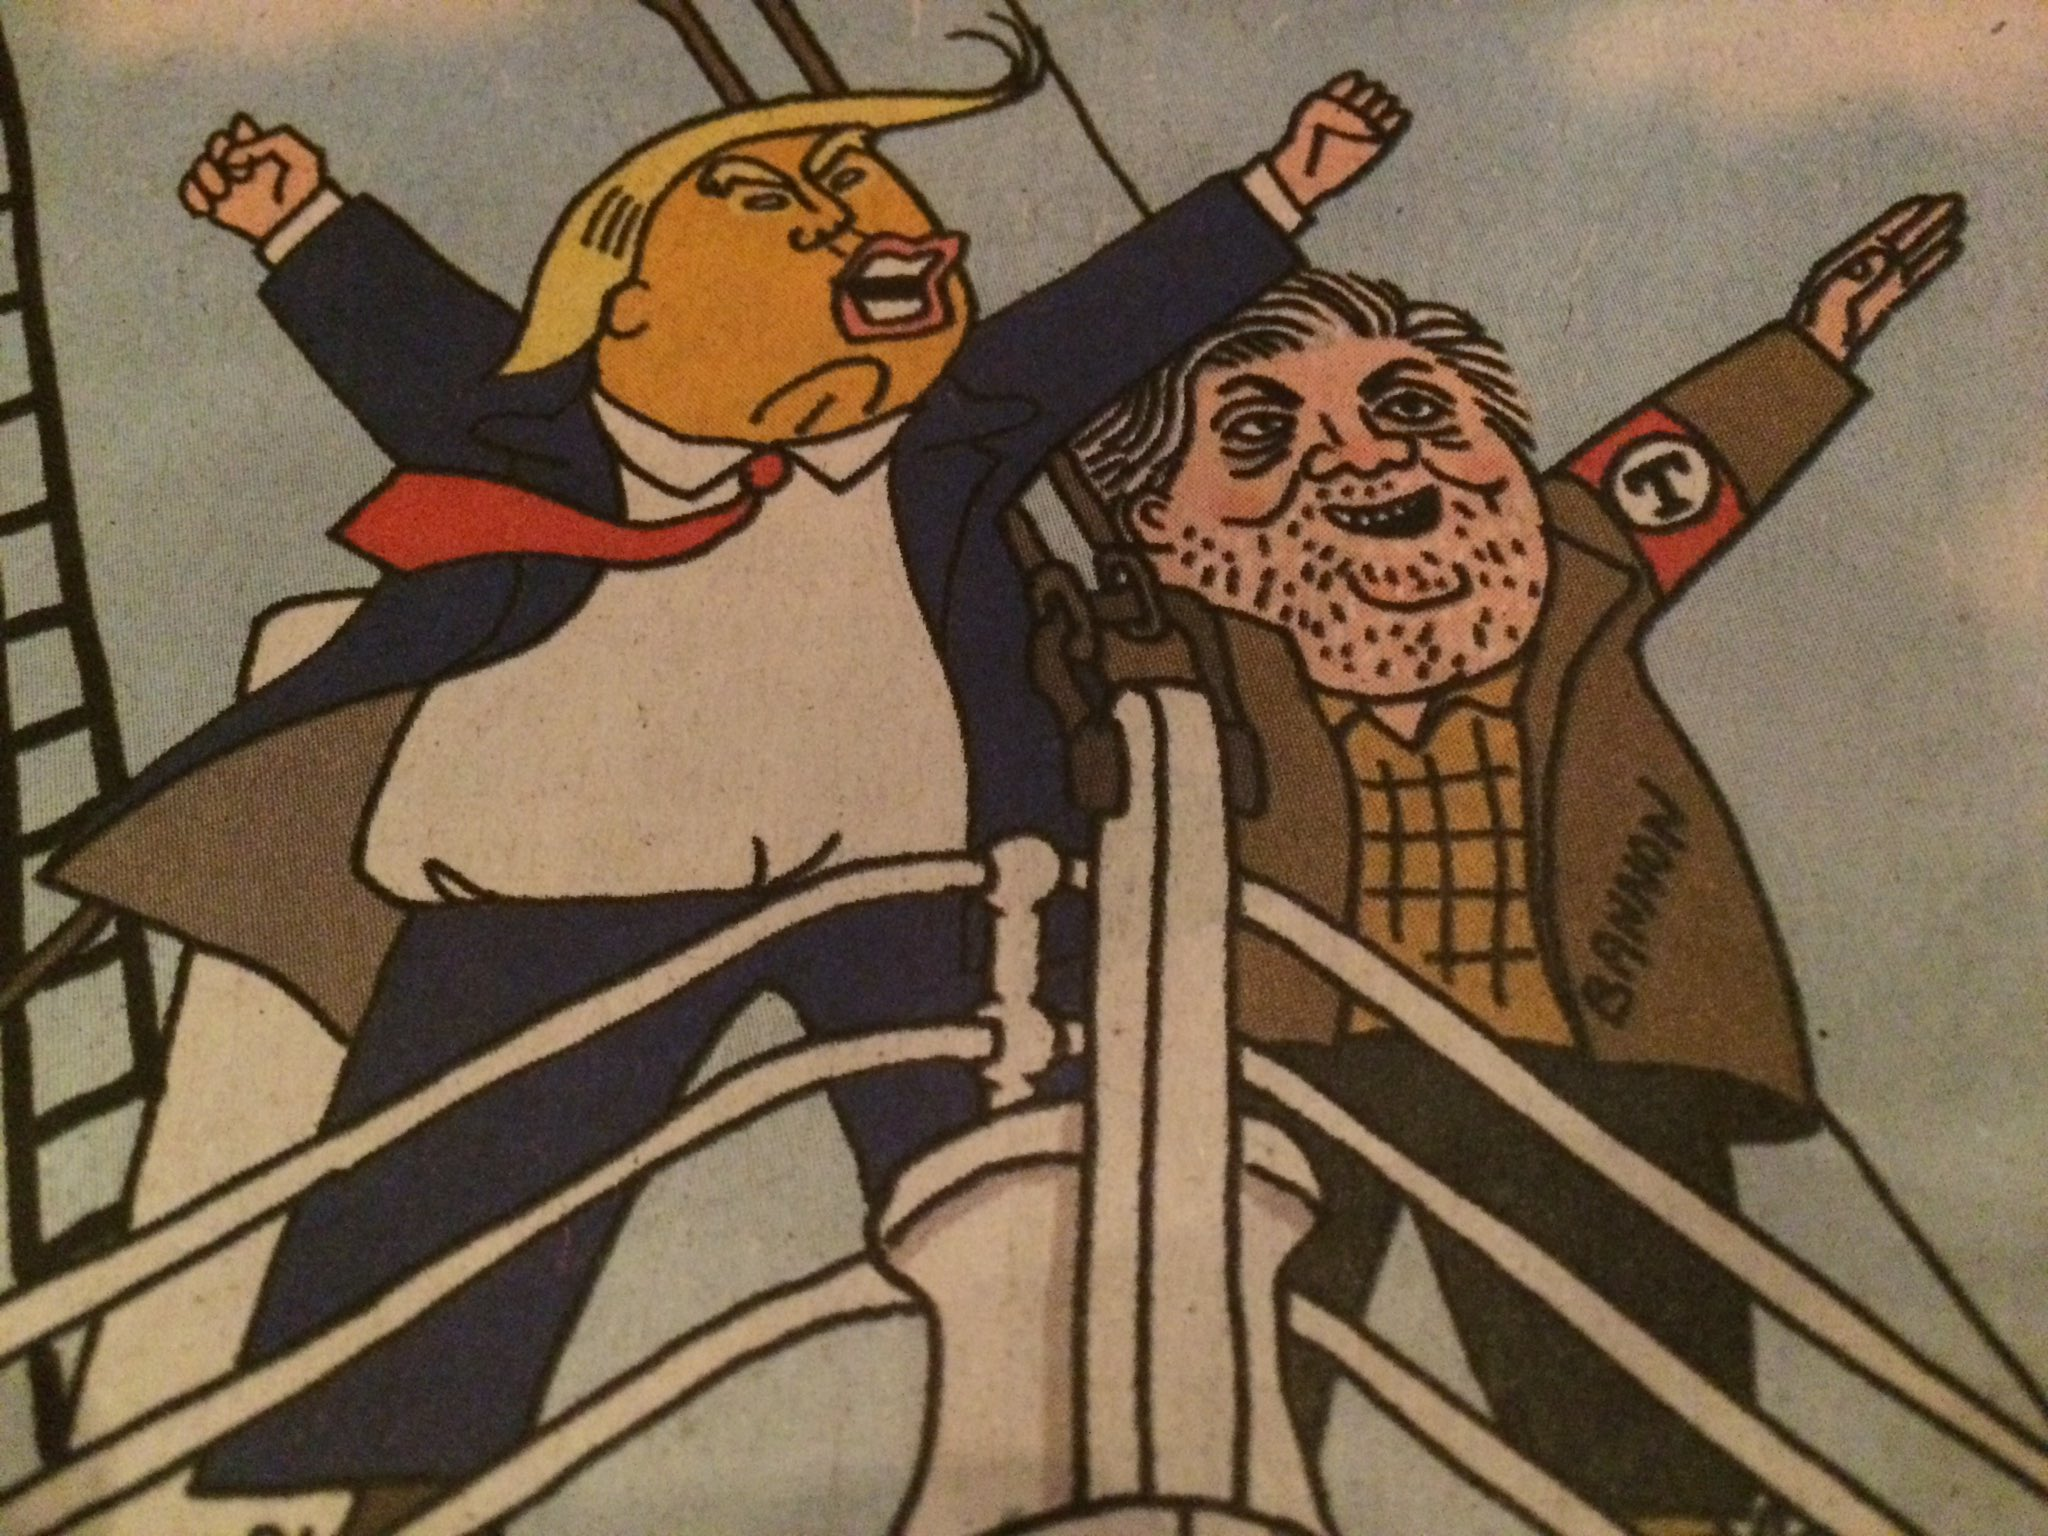 Trump-Bannon Titanic - Cartoon from China Daily